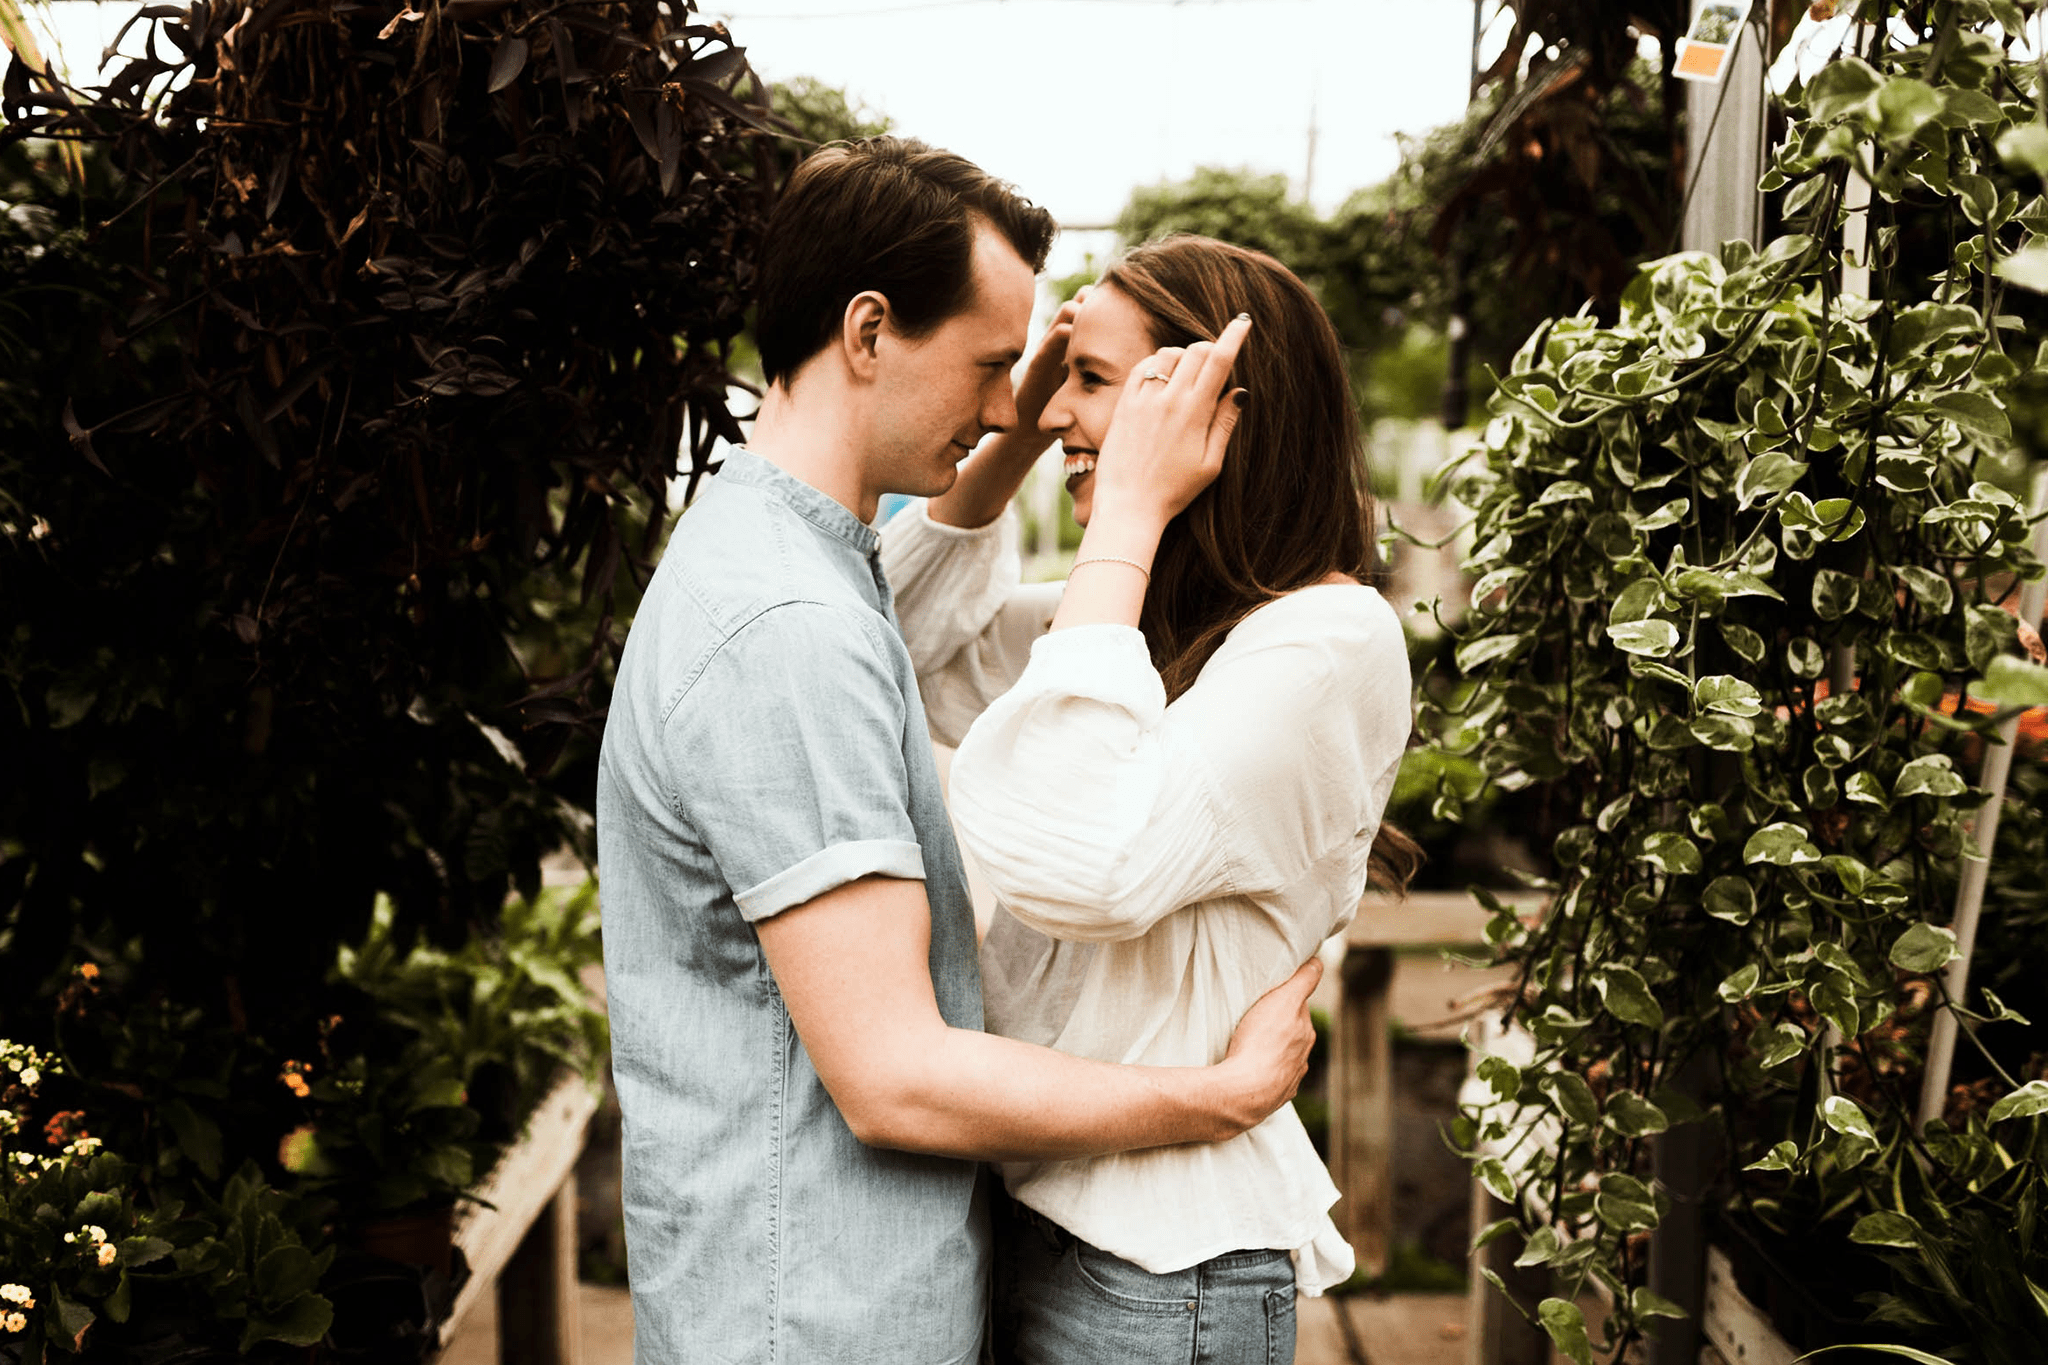 smiling young couple in garden - patient forms vaginal rejuvenation - female cosmetic surgery